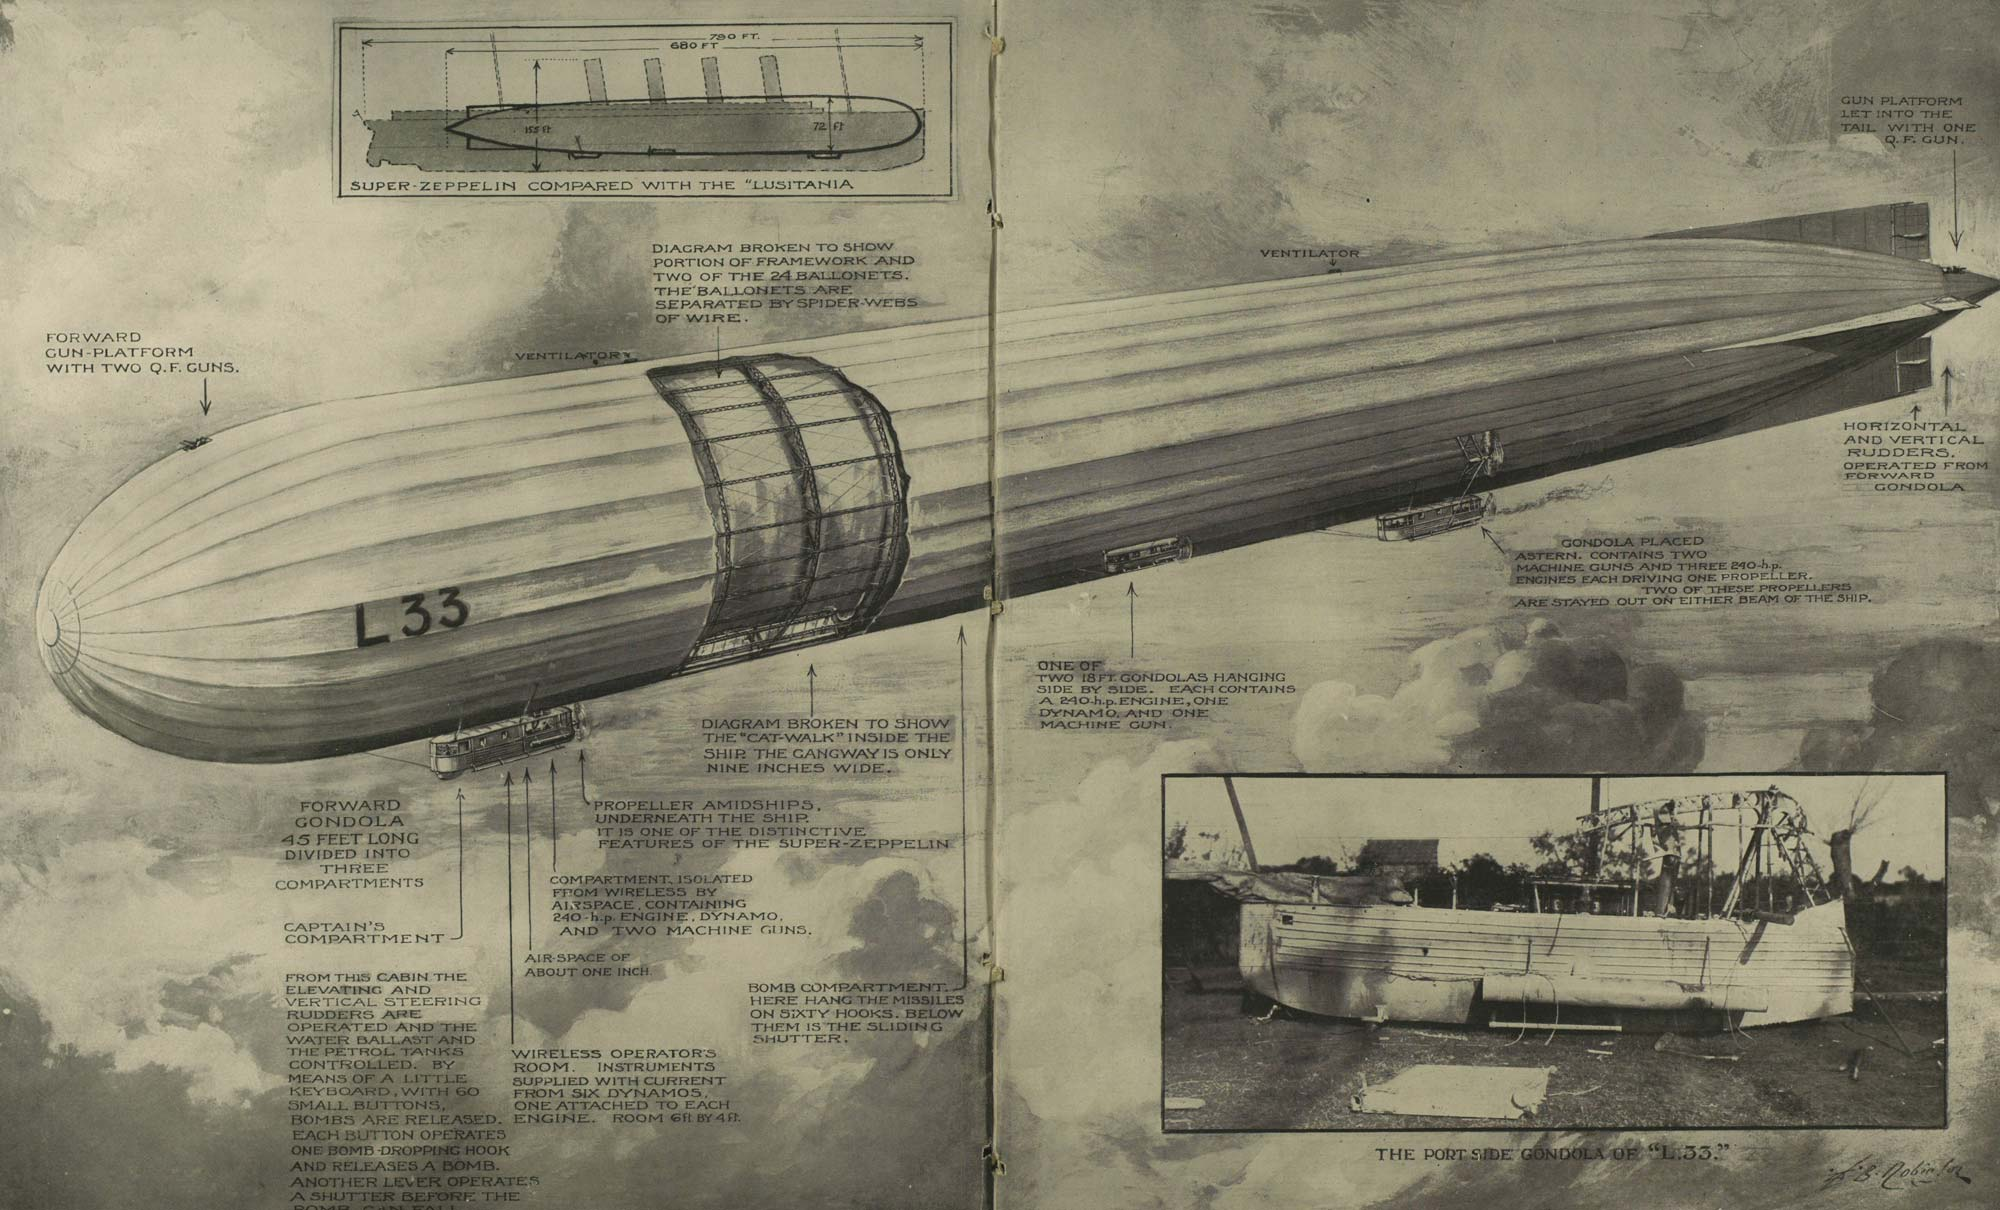 Image of a German Zeppelin from the Illustrated London News that appeared with the caption 'Much mechanism for no military result'